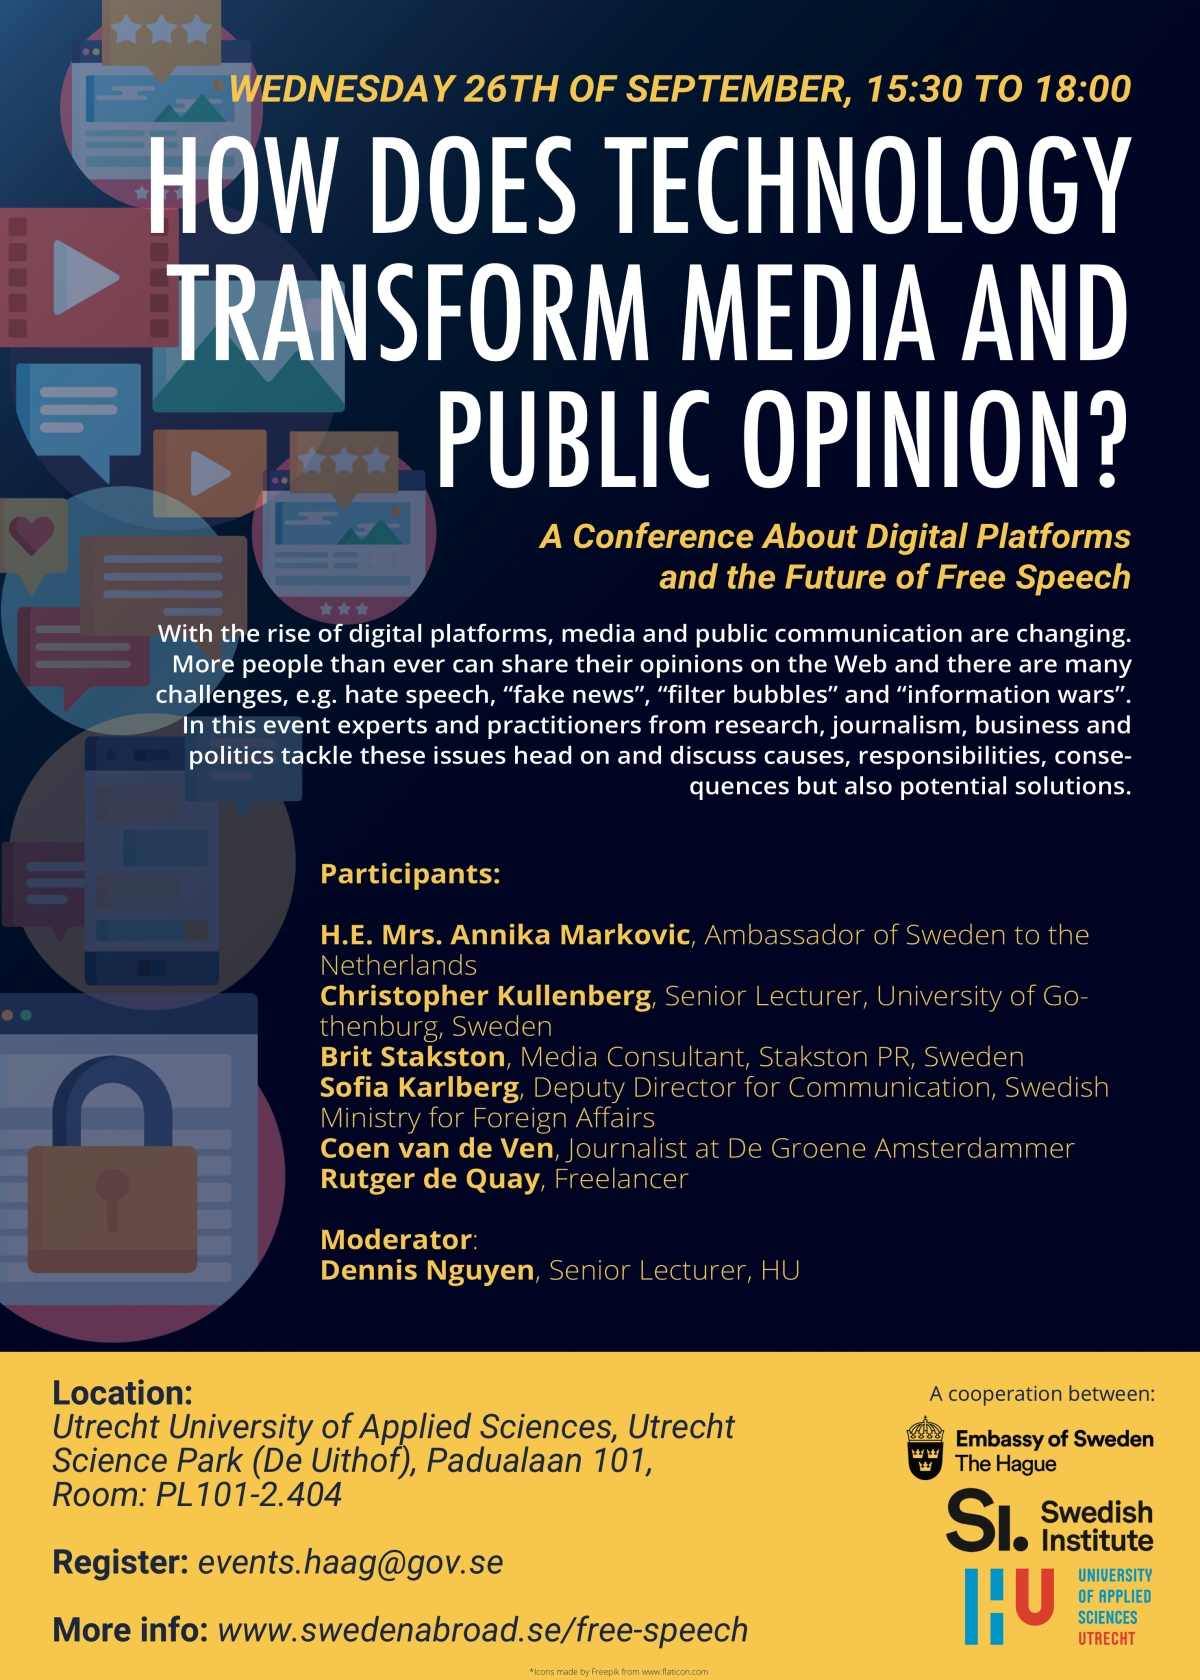 How Does Technology Transform Media and Public Opinion?  A Conference with the Swedish Embassy in Den Haag at the University of Applied Sciences in Utrecht